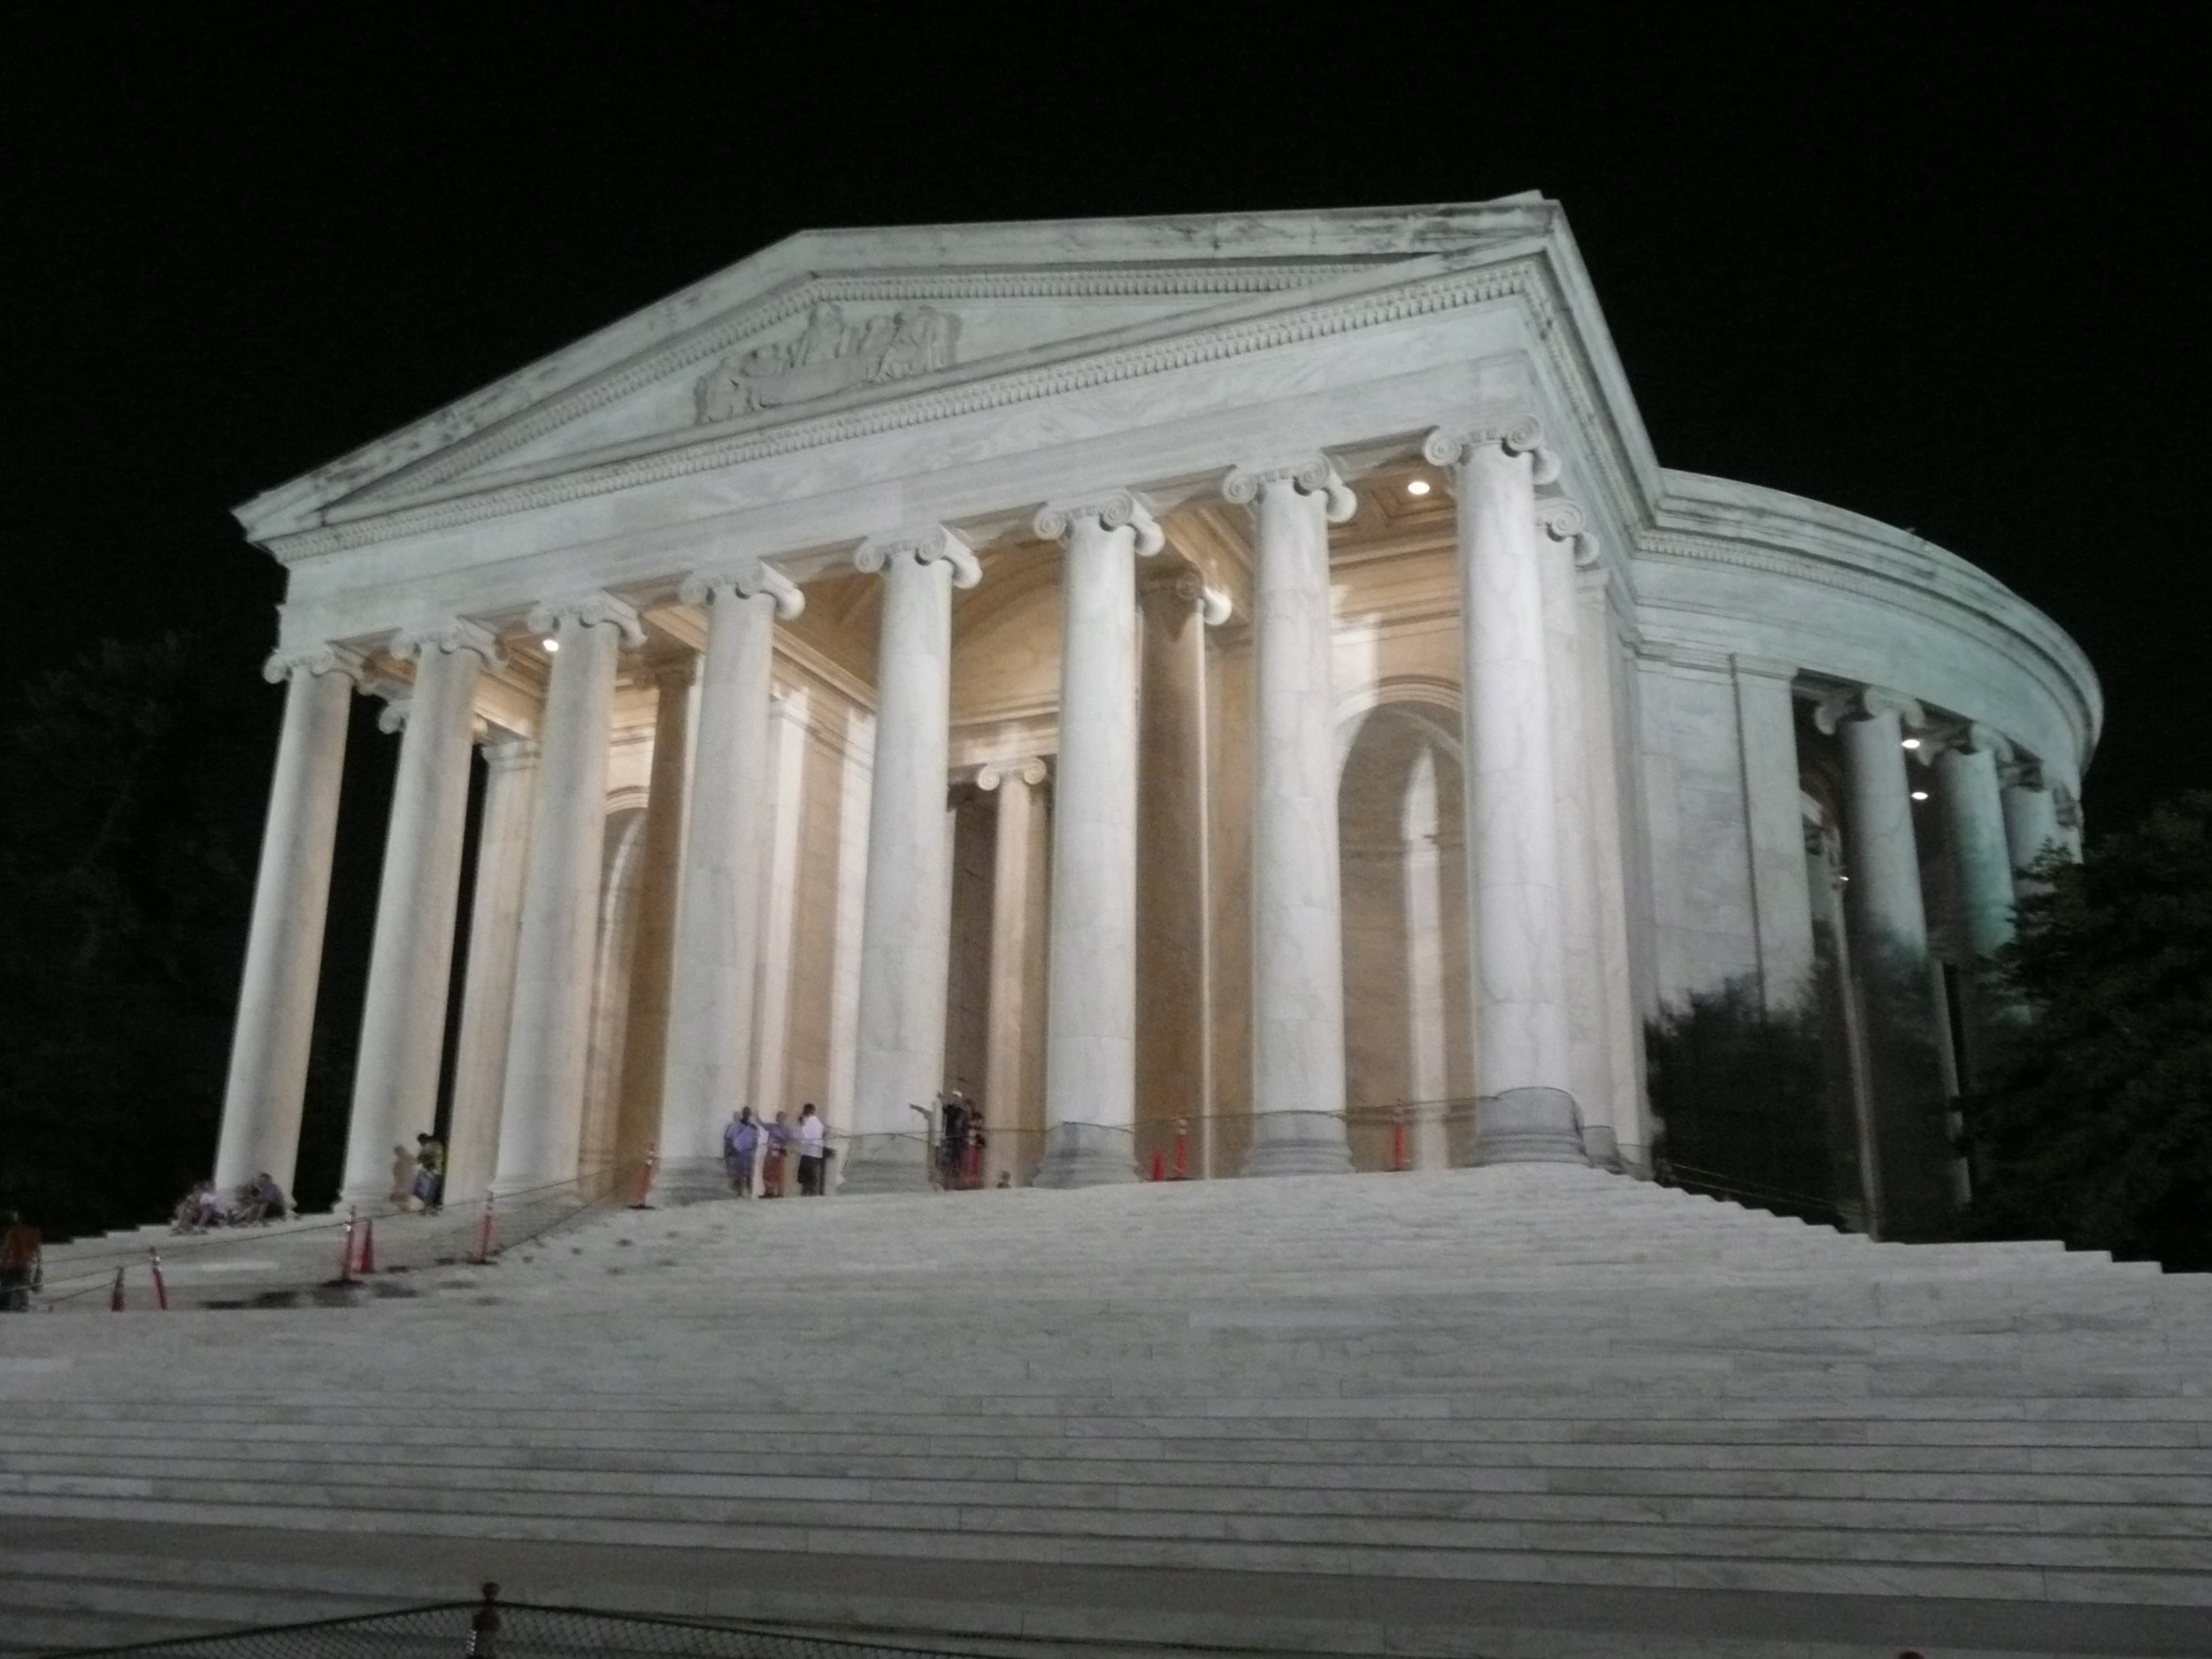 Lincoln Memorial Washington.JPG